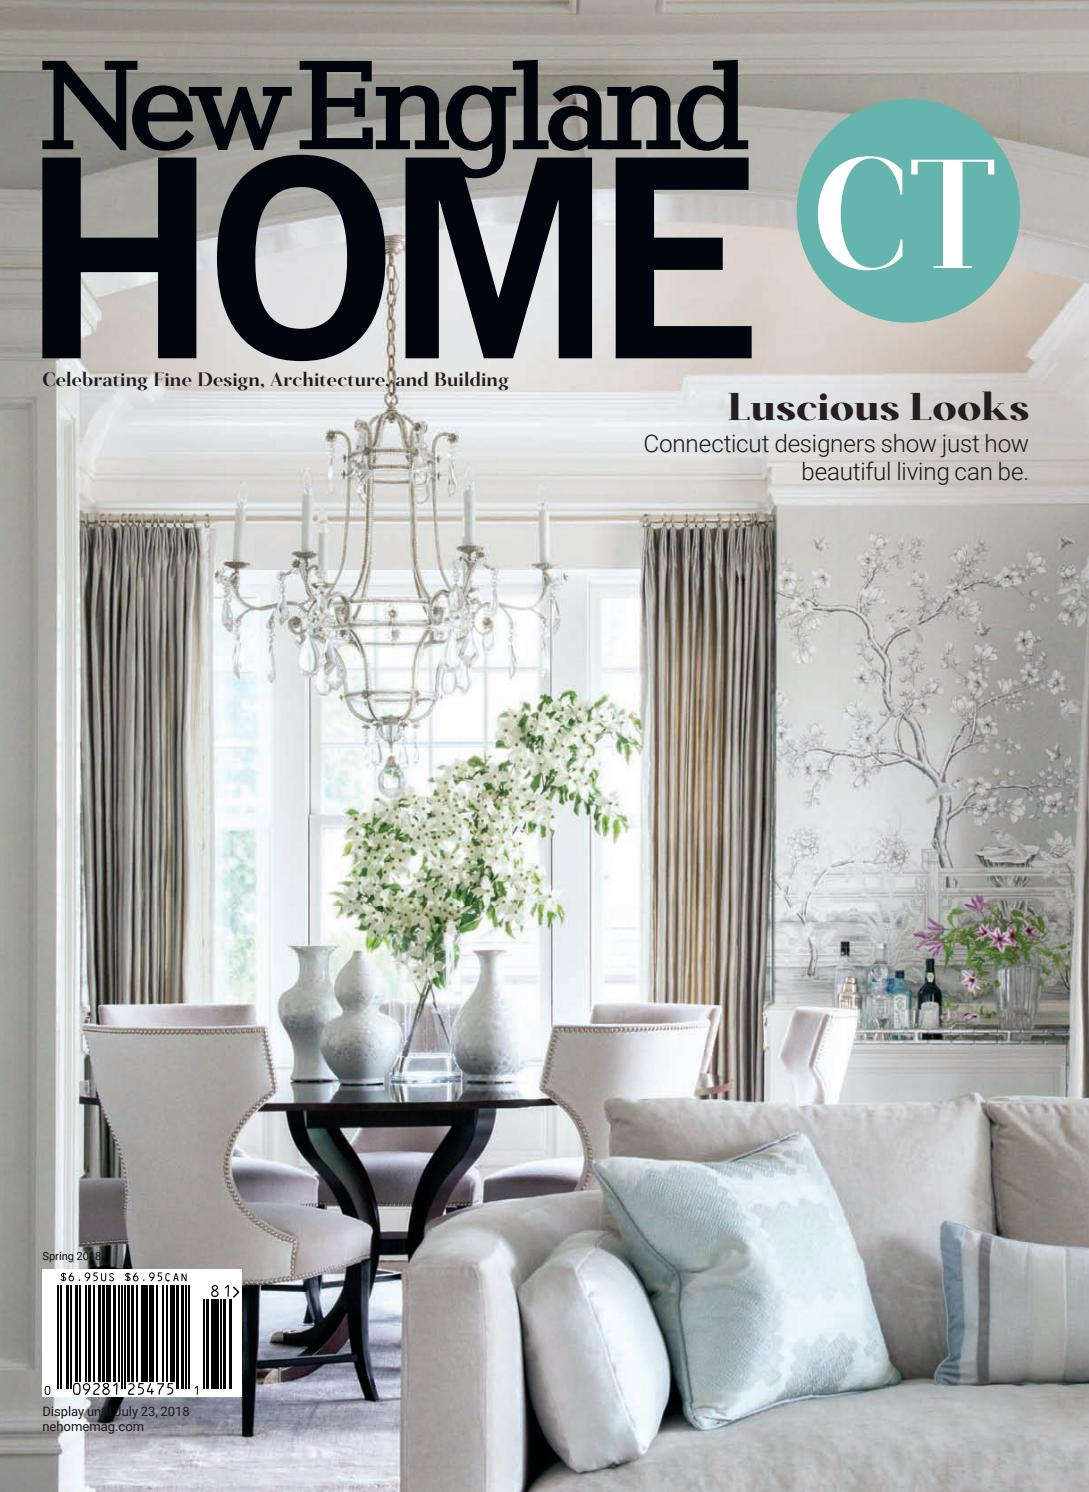 New england home connecticut spring 2018 by new england home magazine llc issuu